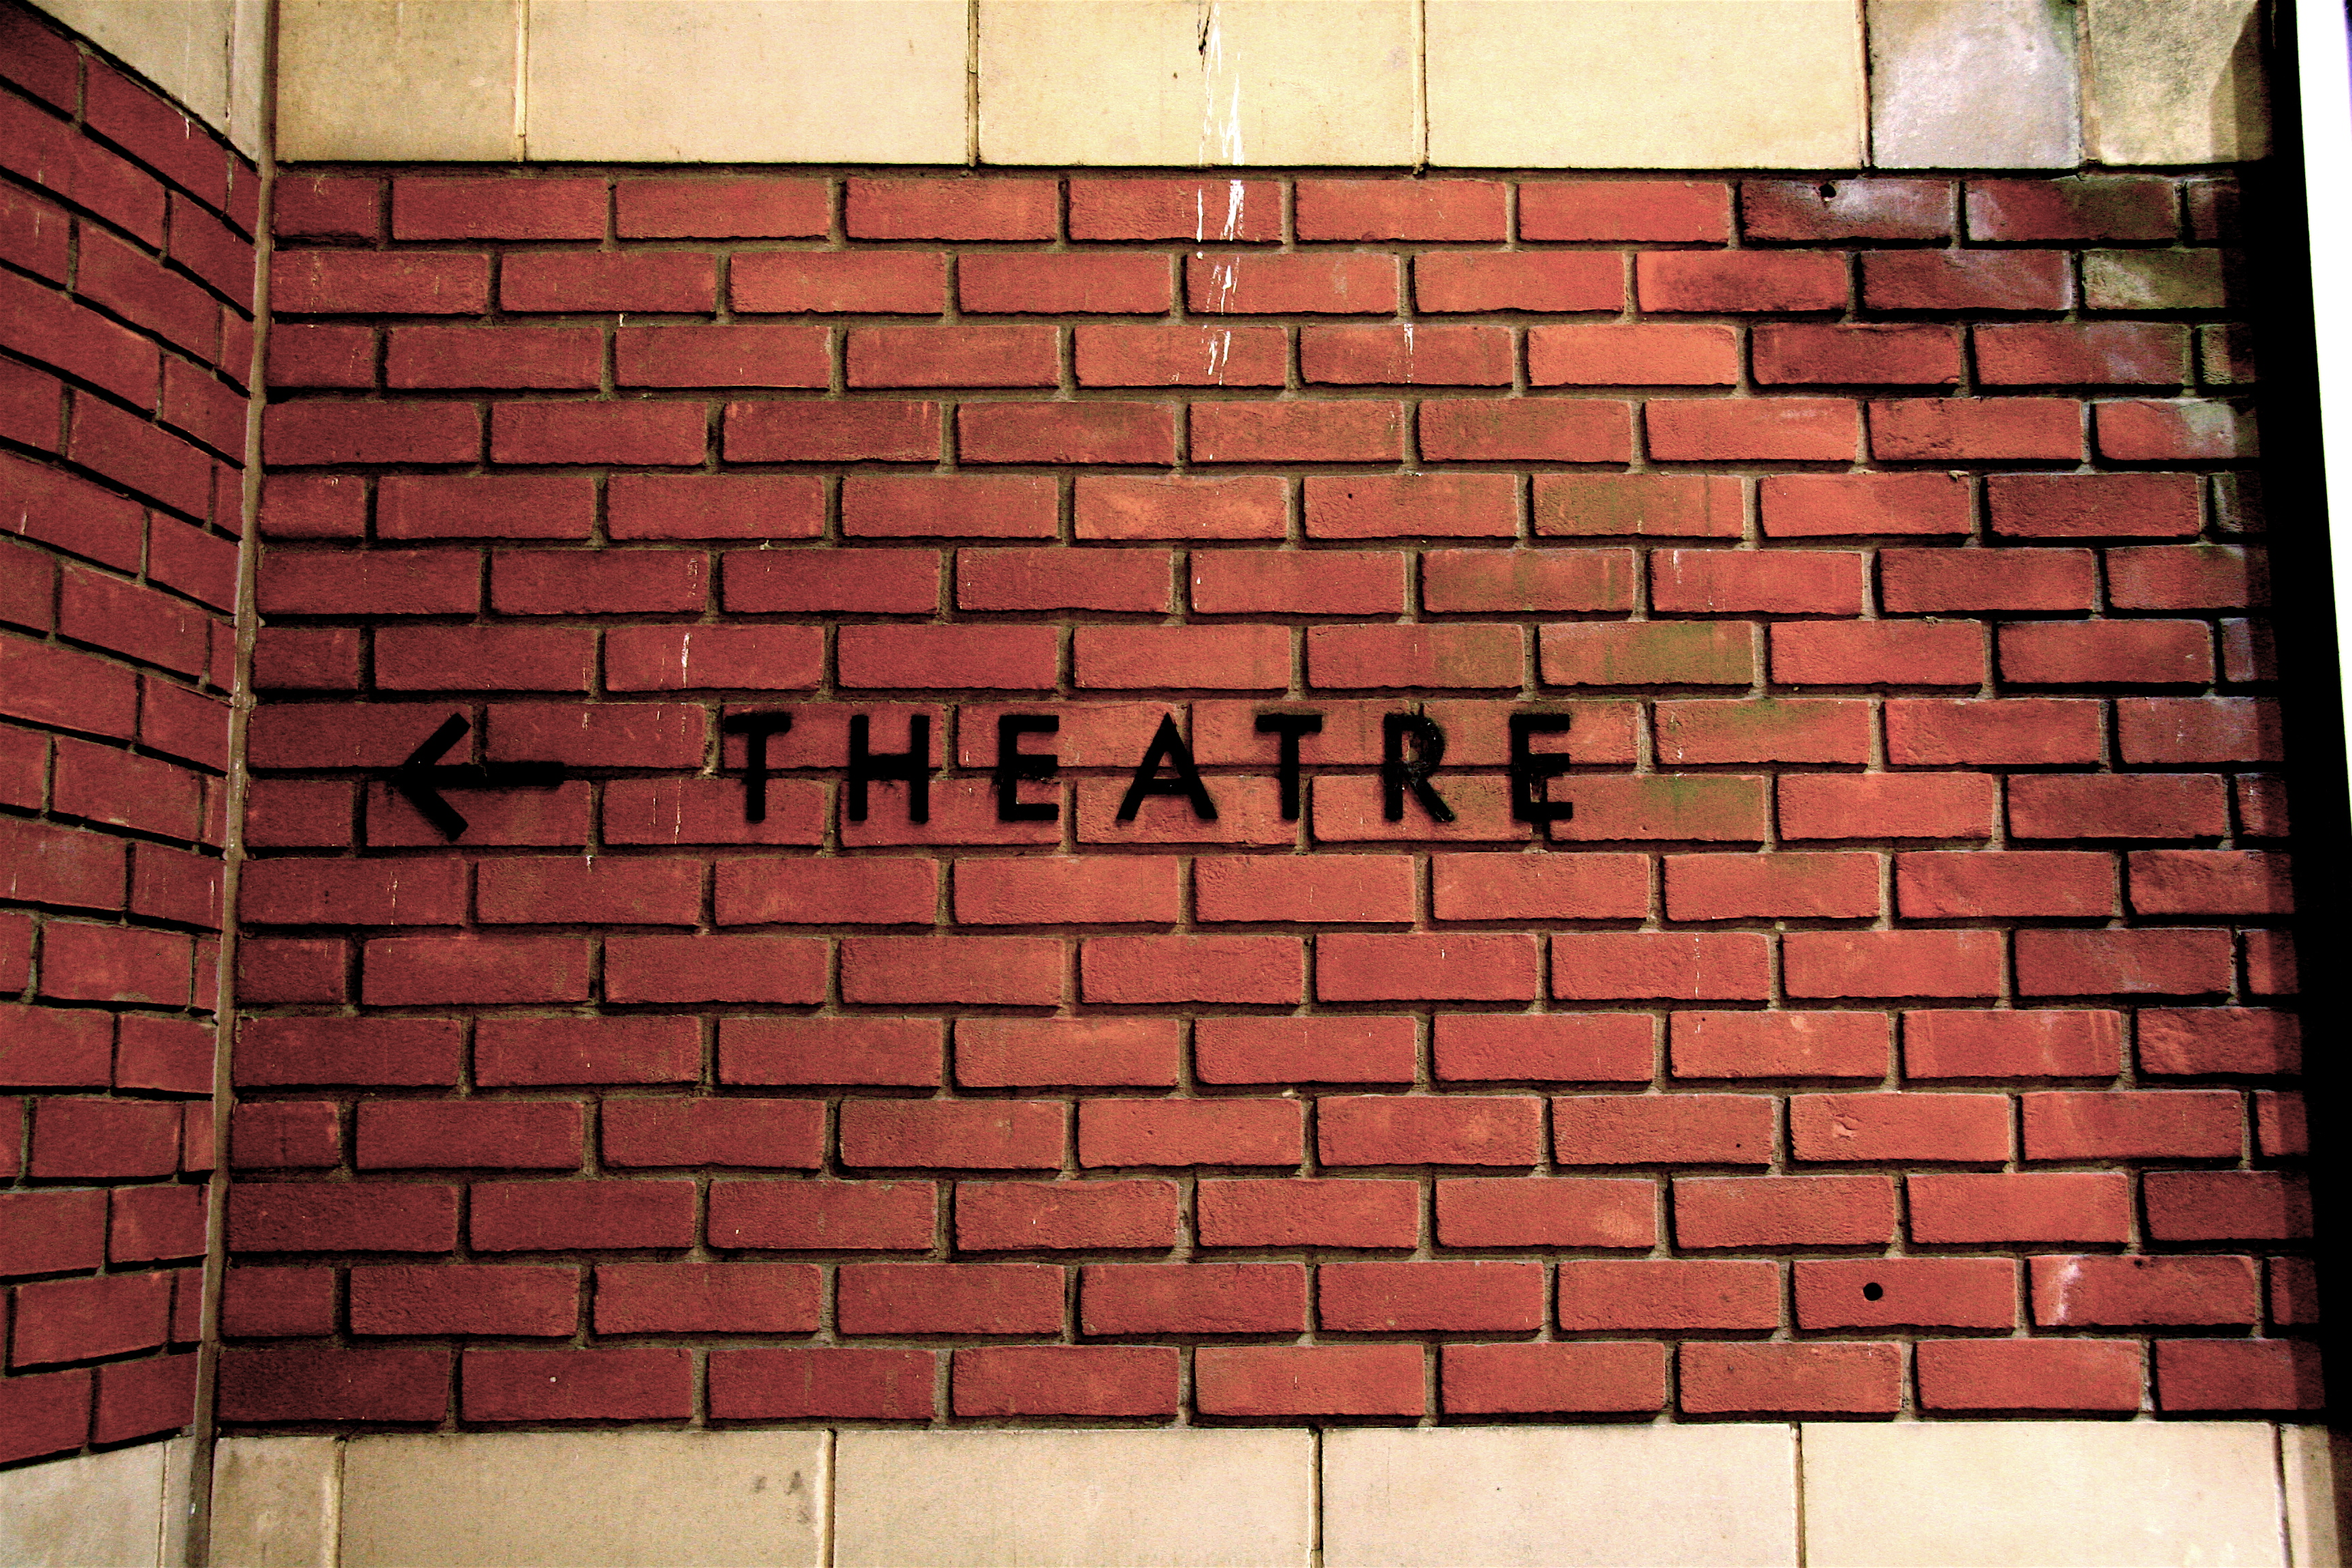 """Theatre"" sign on brick wall"